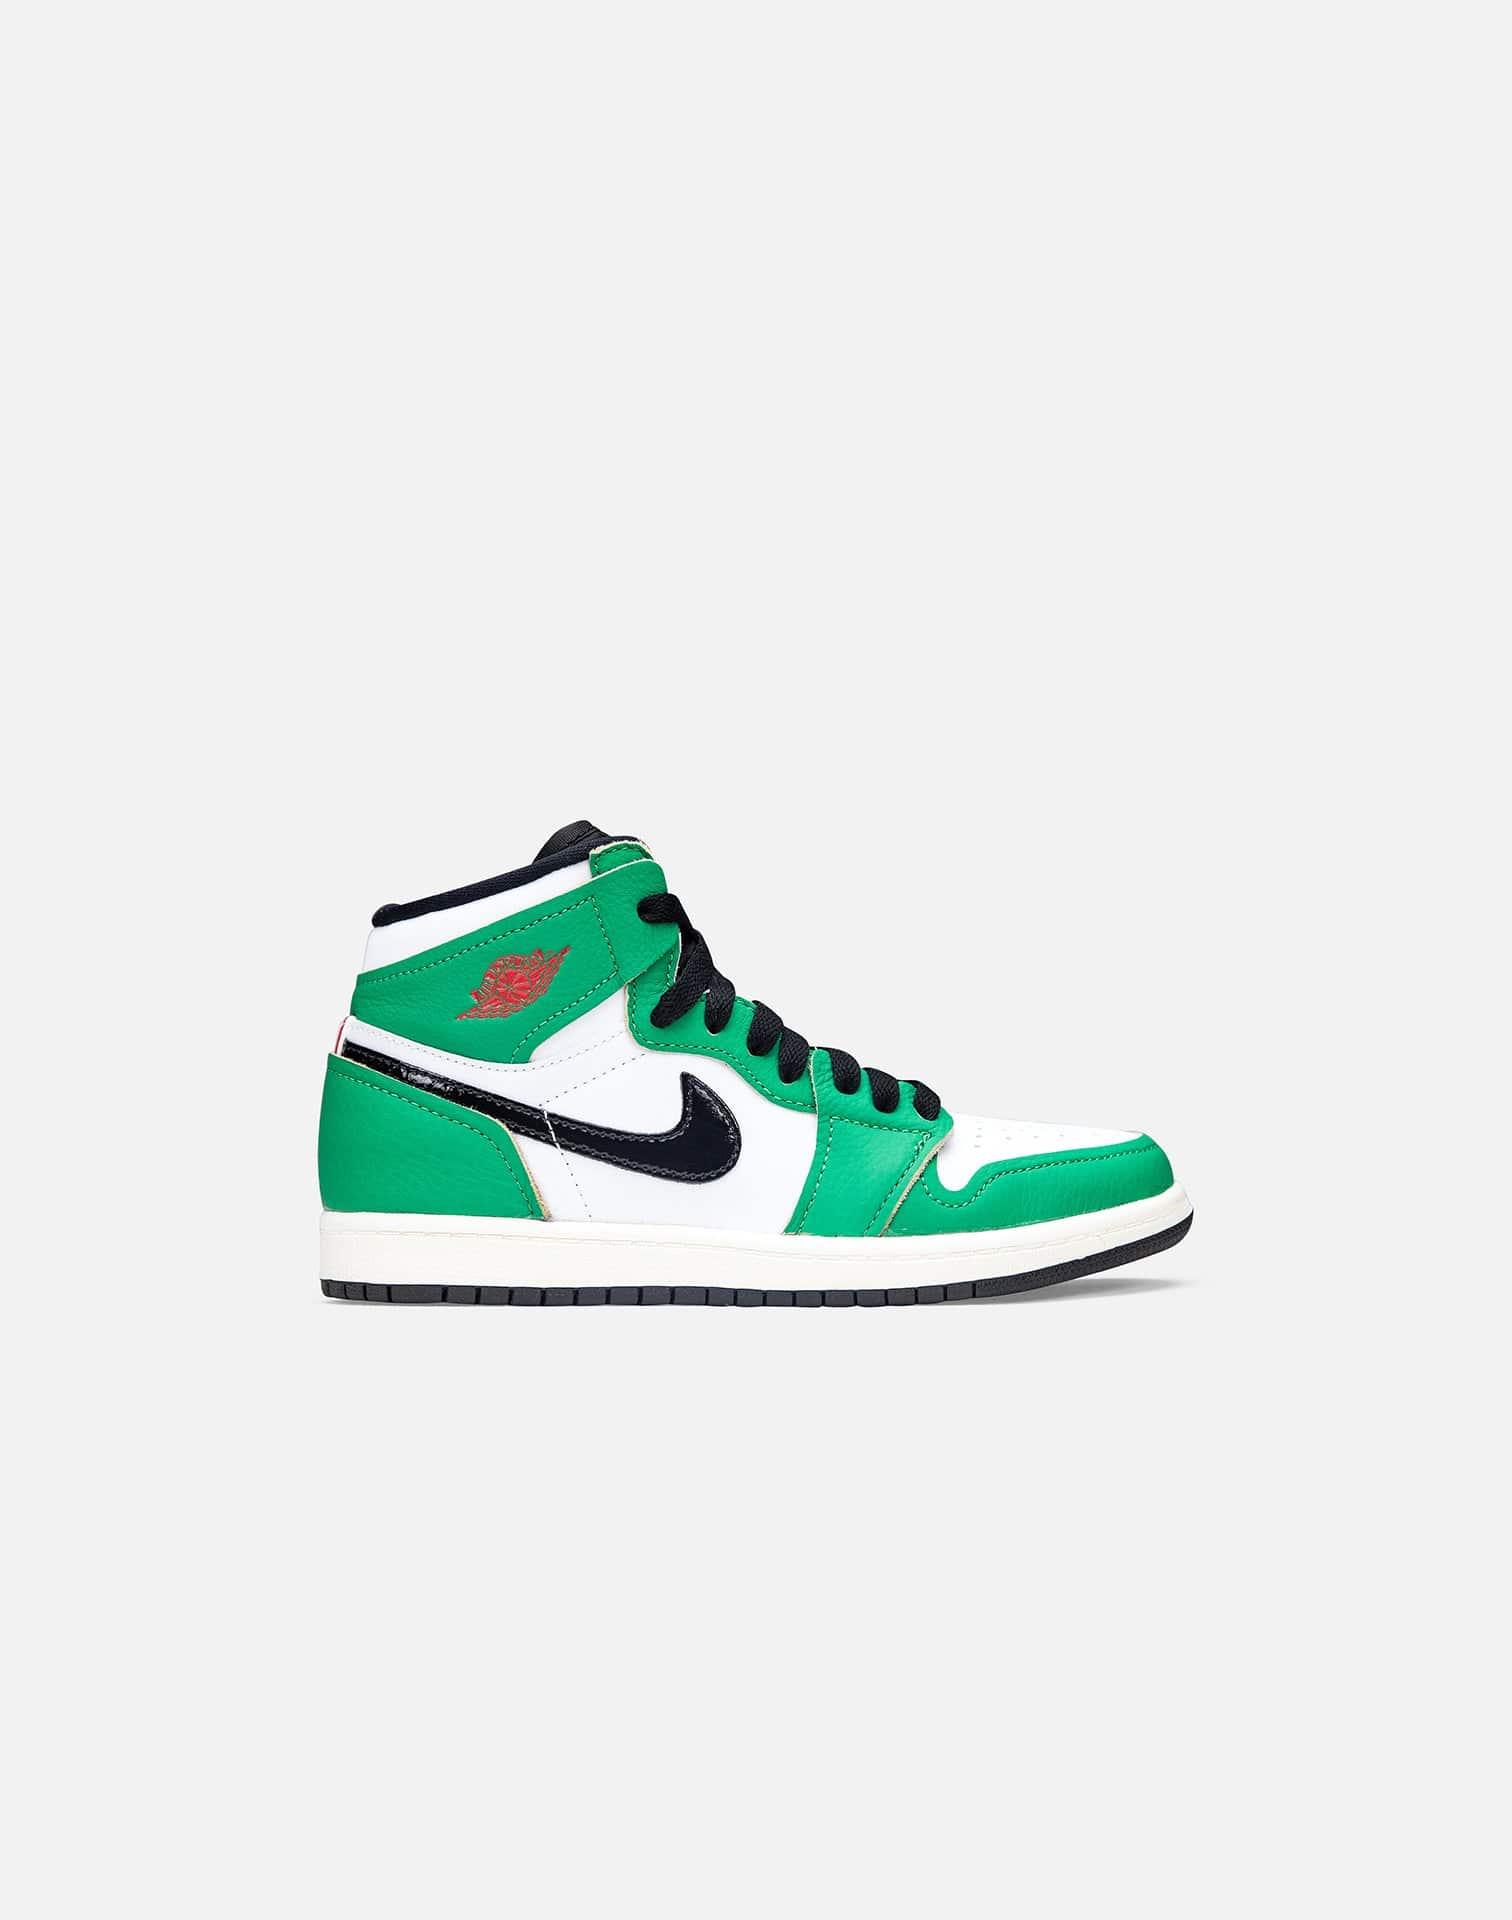 Jordan AIR JORDAN RETRO 1 HIGH 'LUCKY GREEN' PRE-SCHOOL